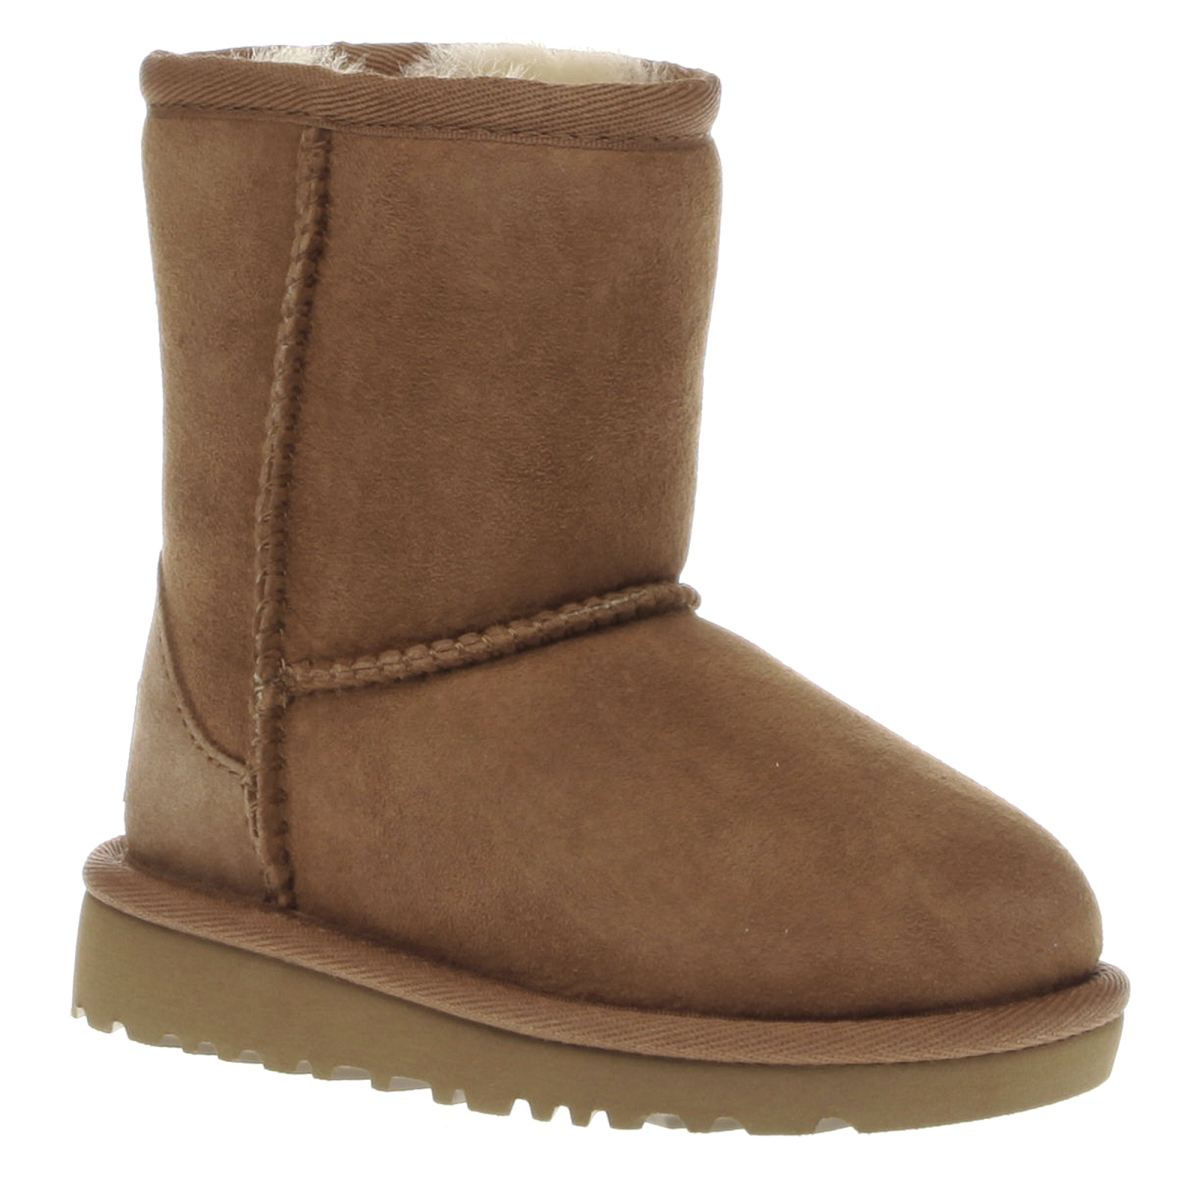 uk official ugg boots